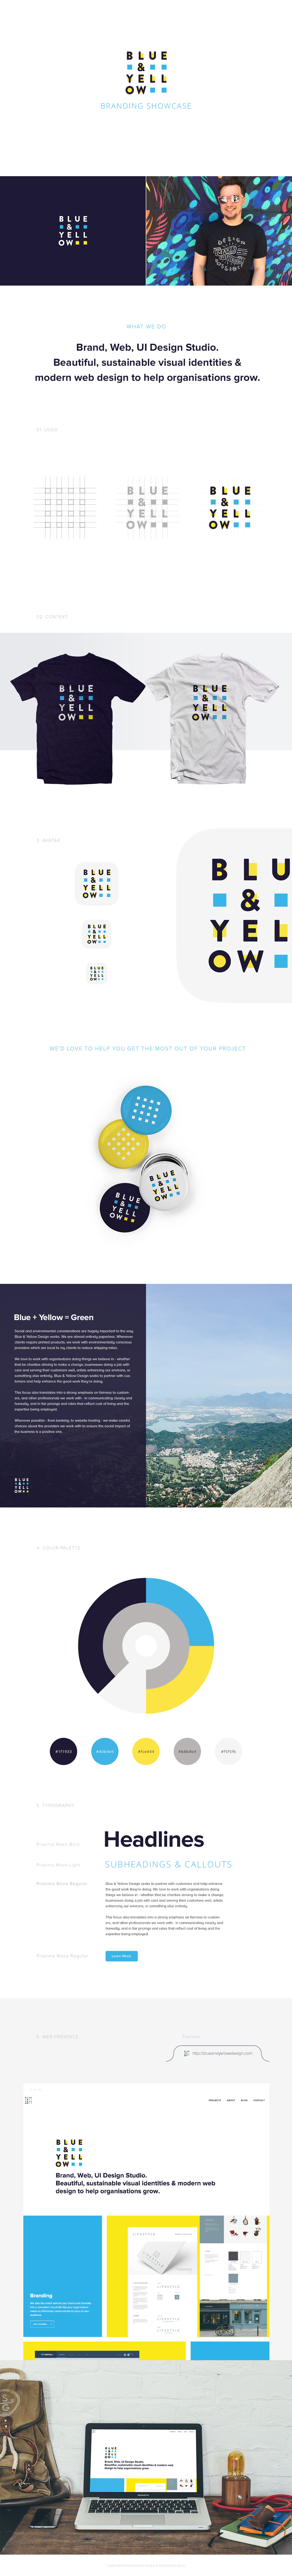 Blue & Yellow Design Studio Branding Showcase